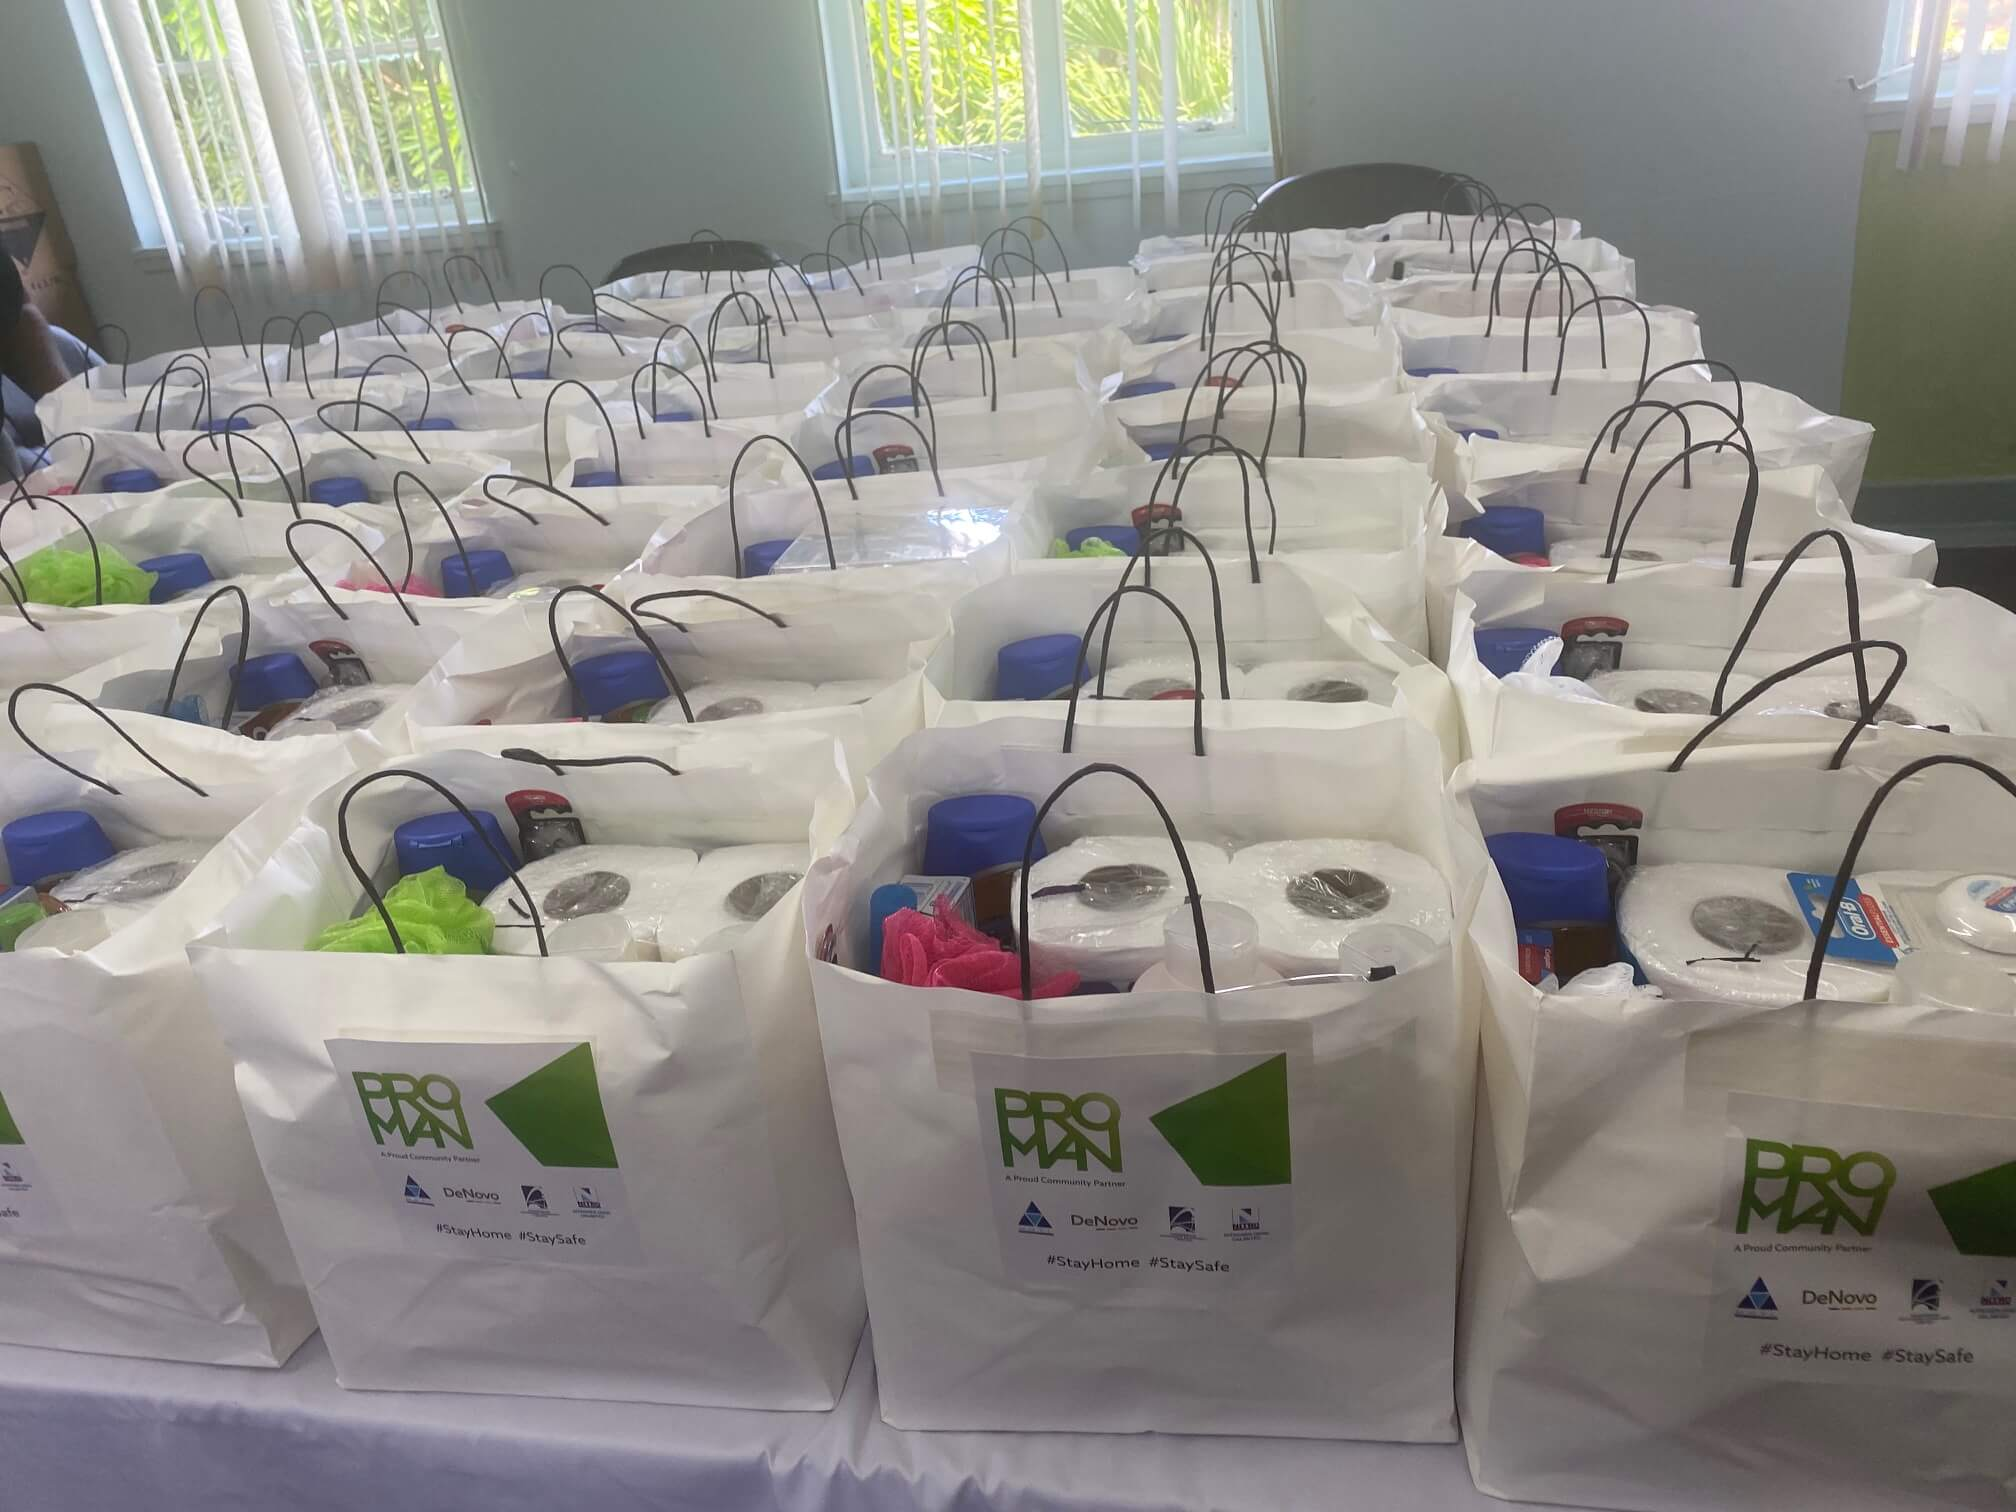 Care packages distributed to health workers encamped at the Caura and Couva hospitals included toiletries and personal hygiene items. Photo via Proman.